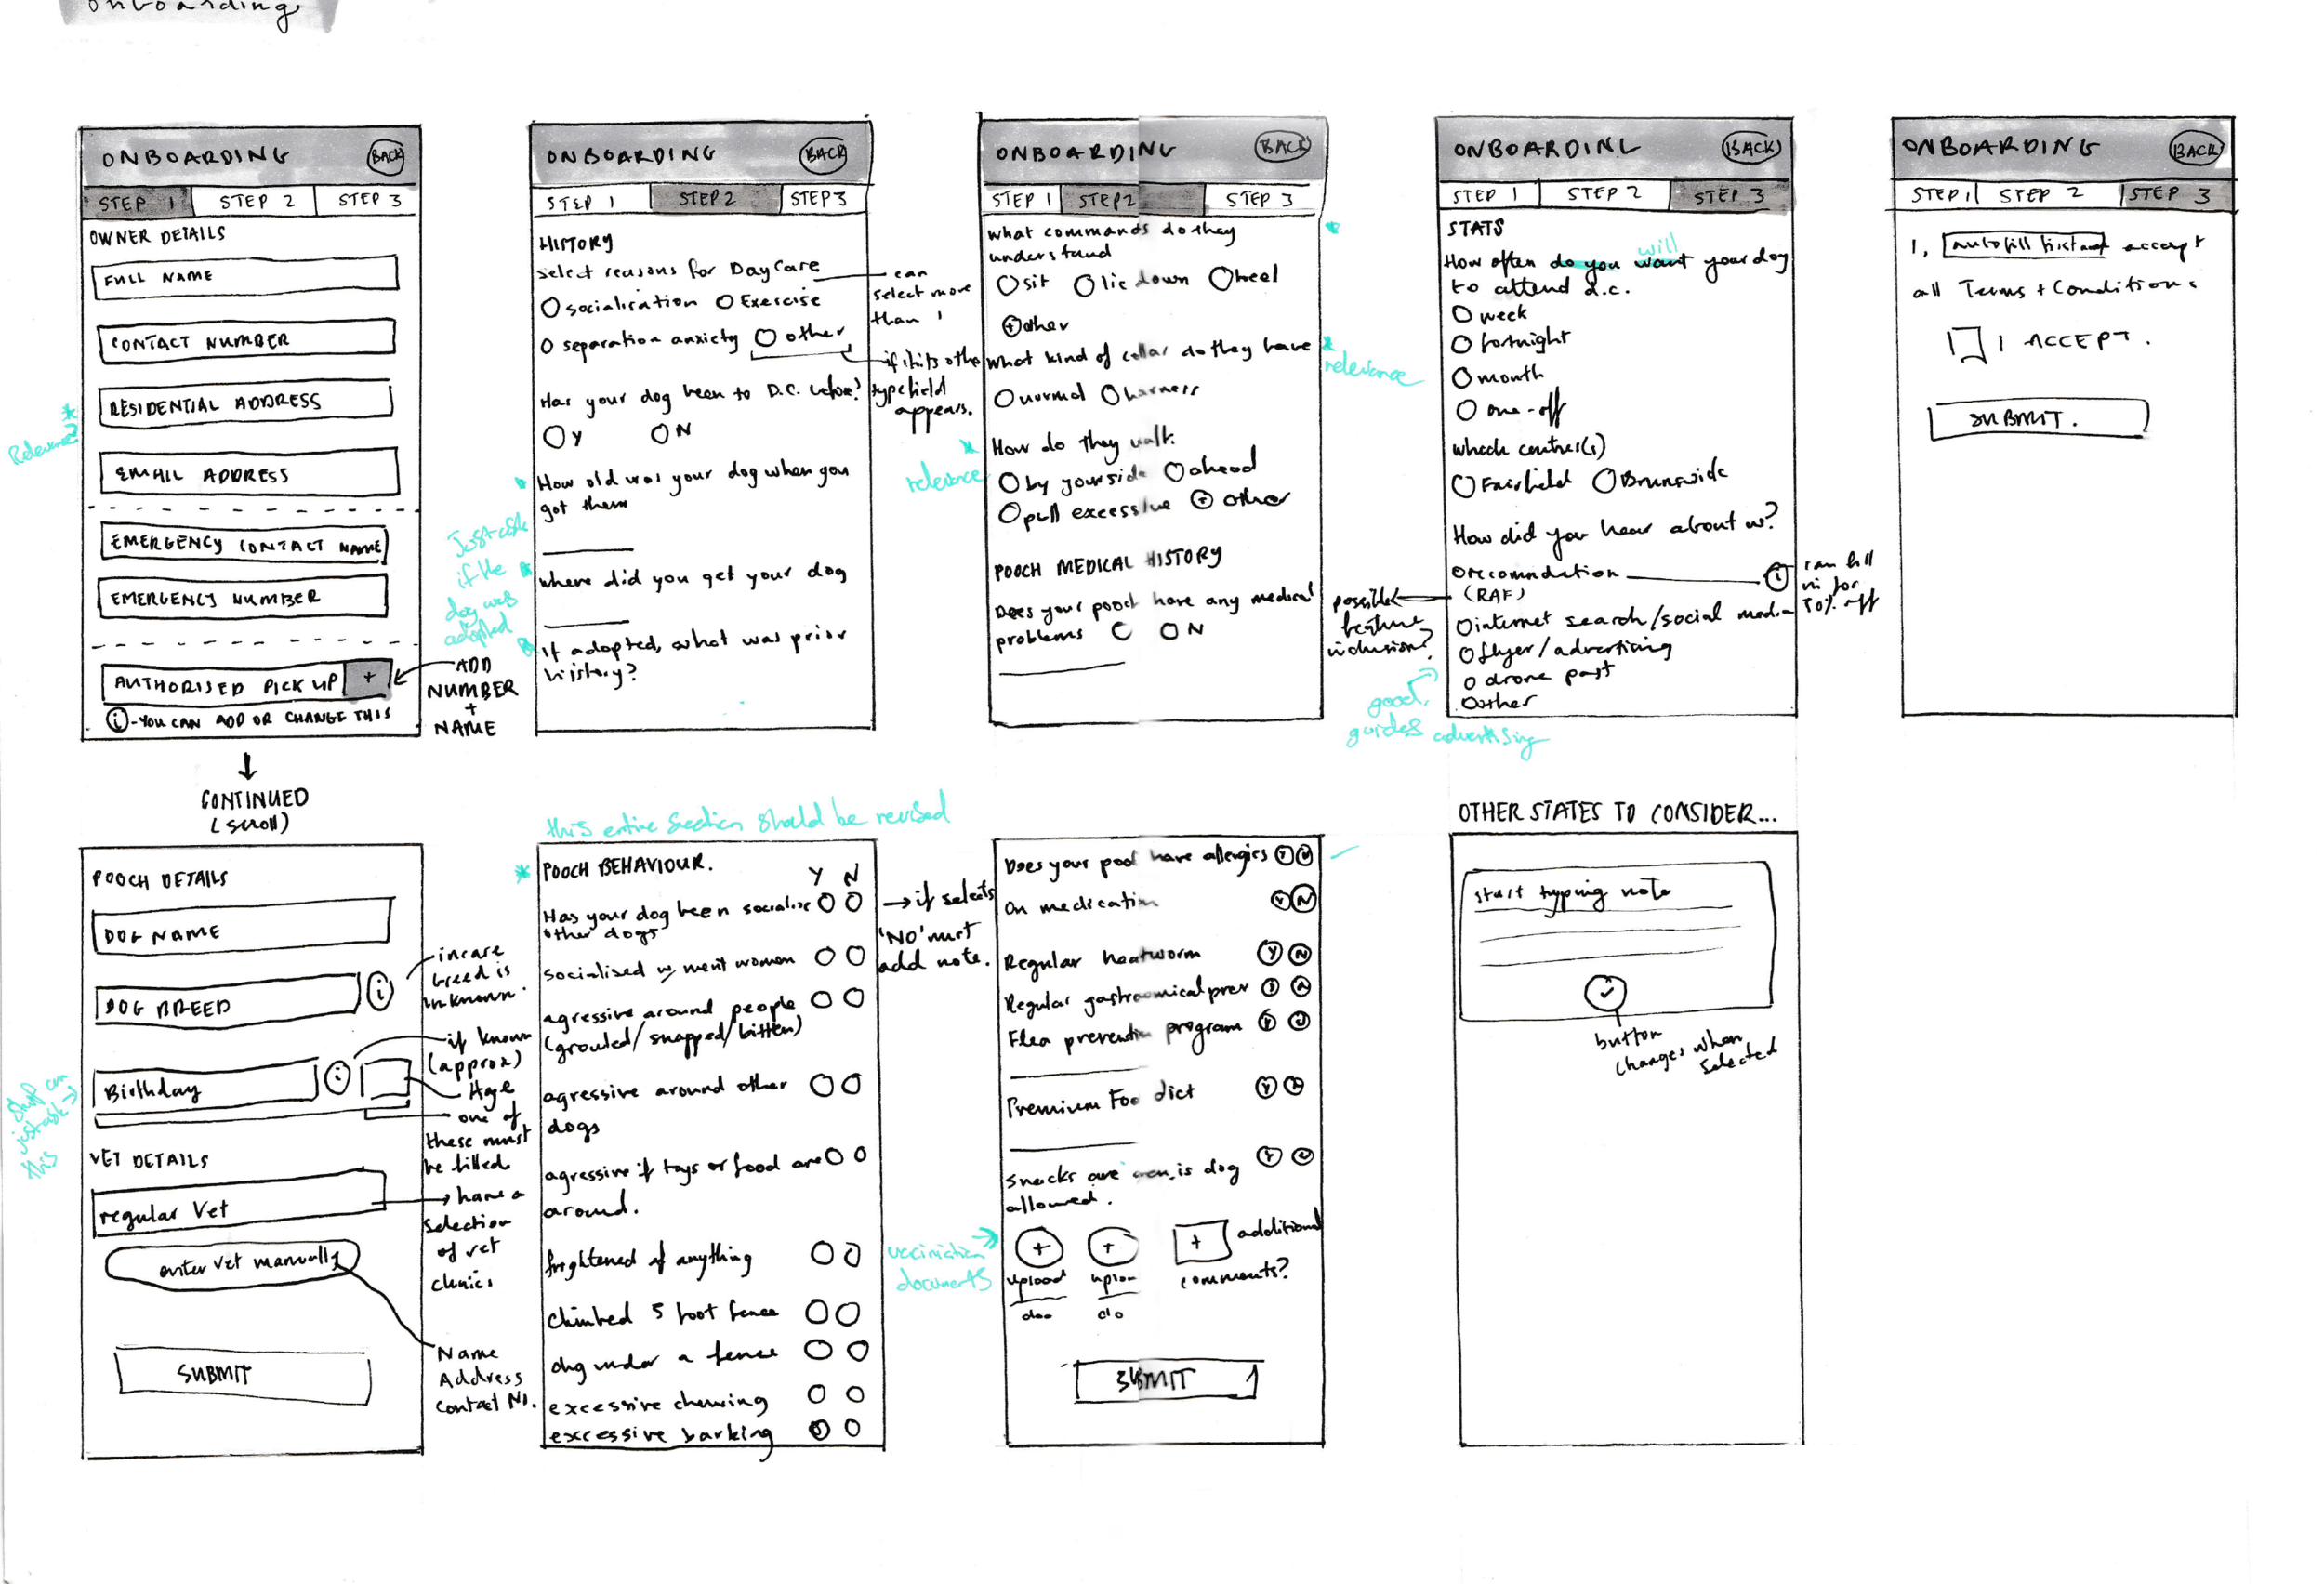 wireframes01.png